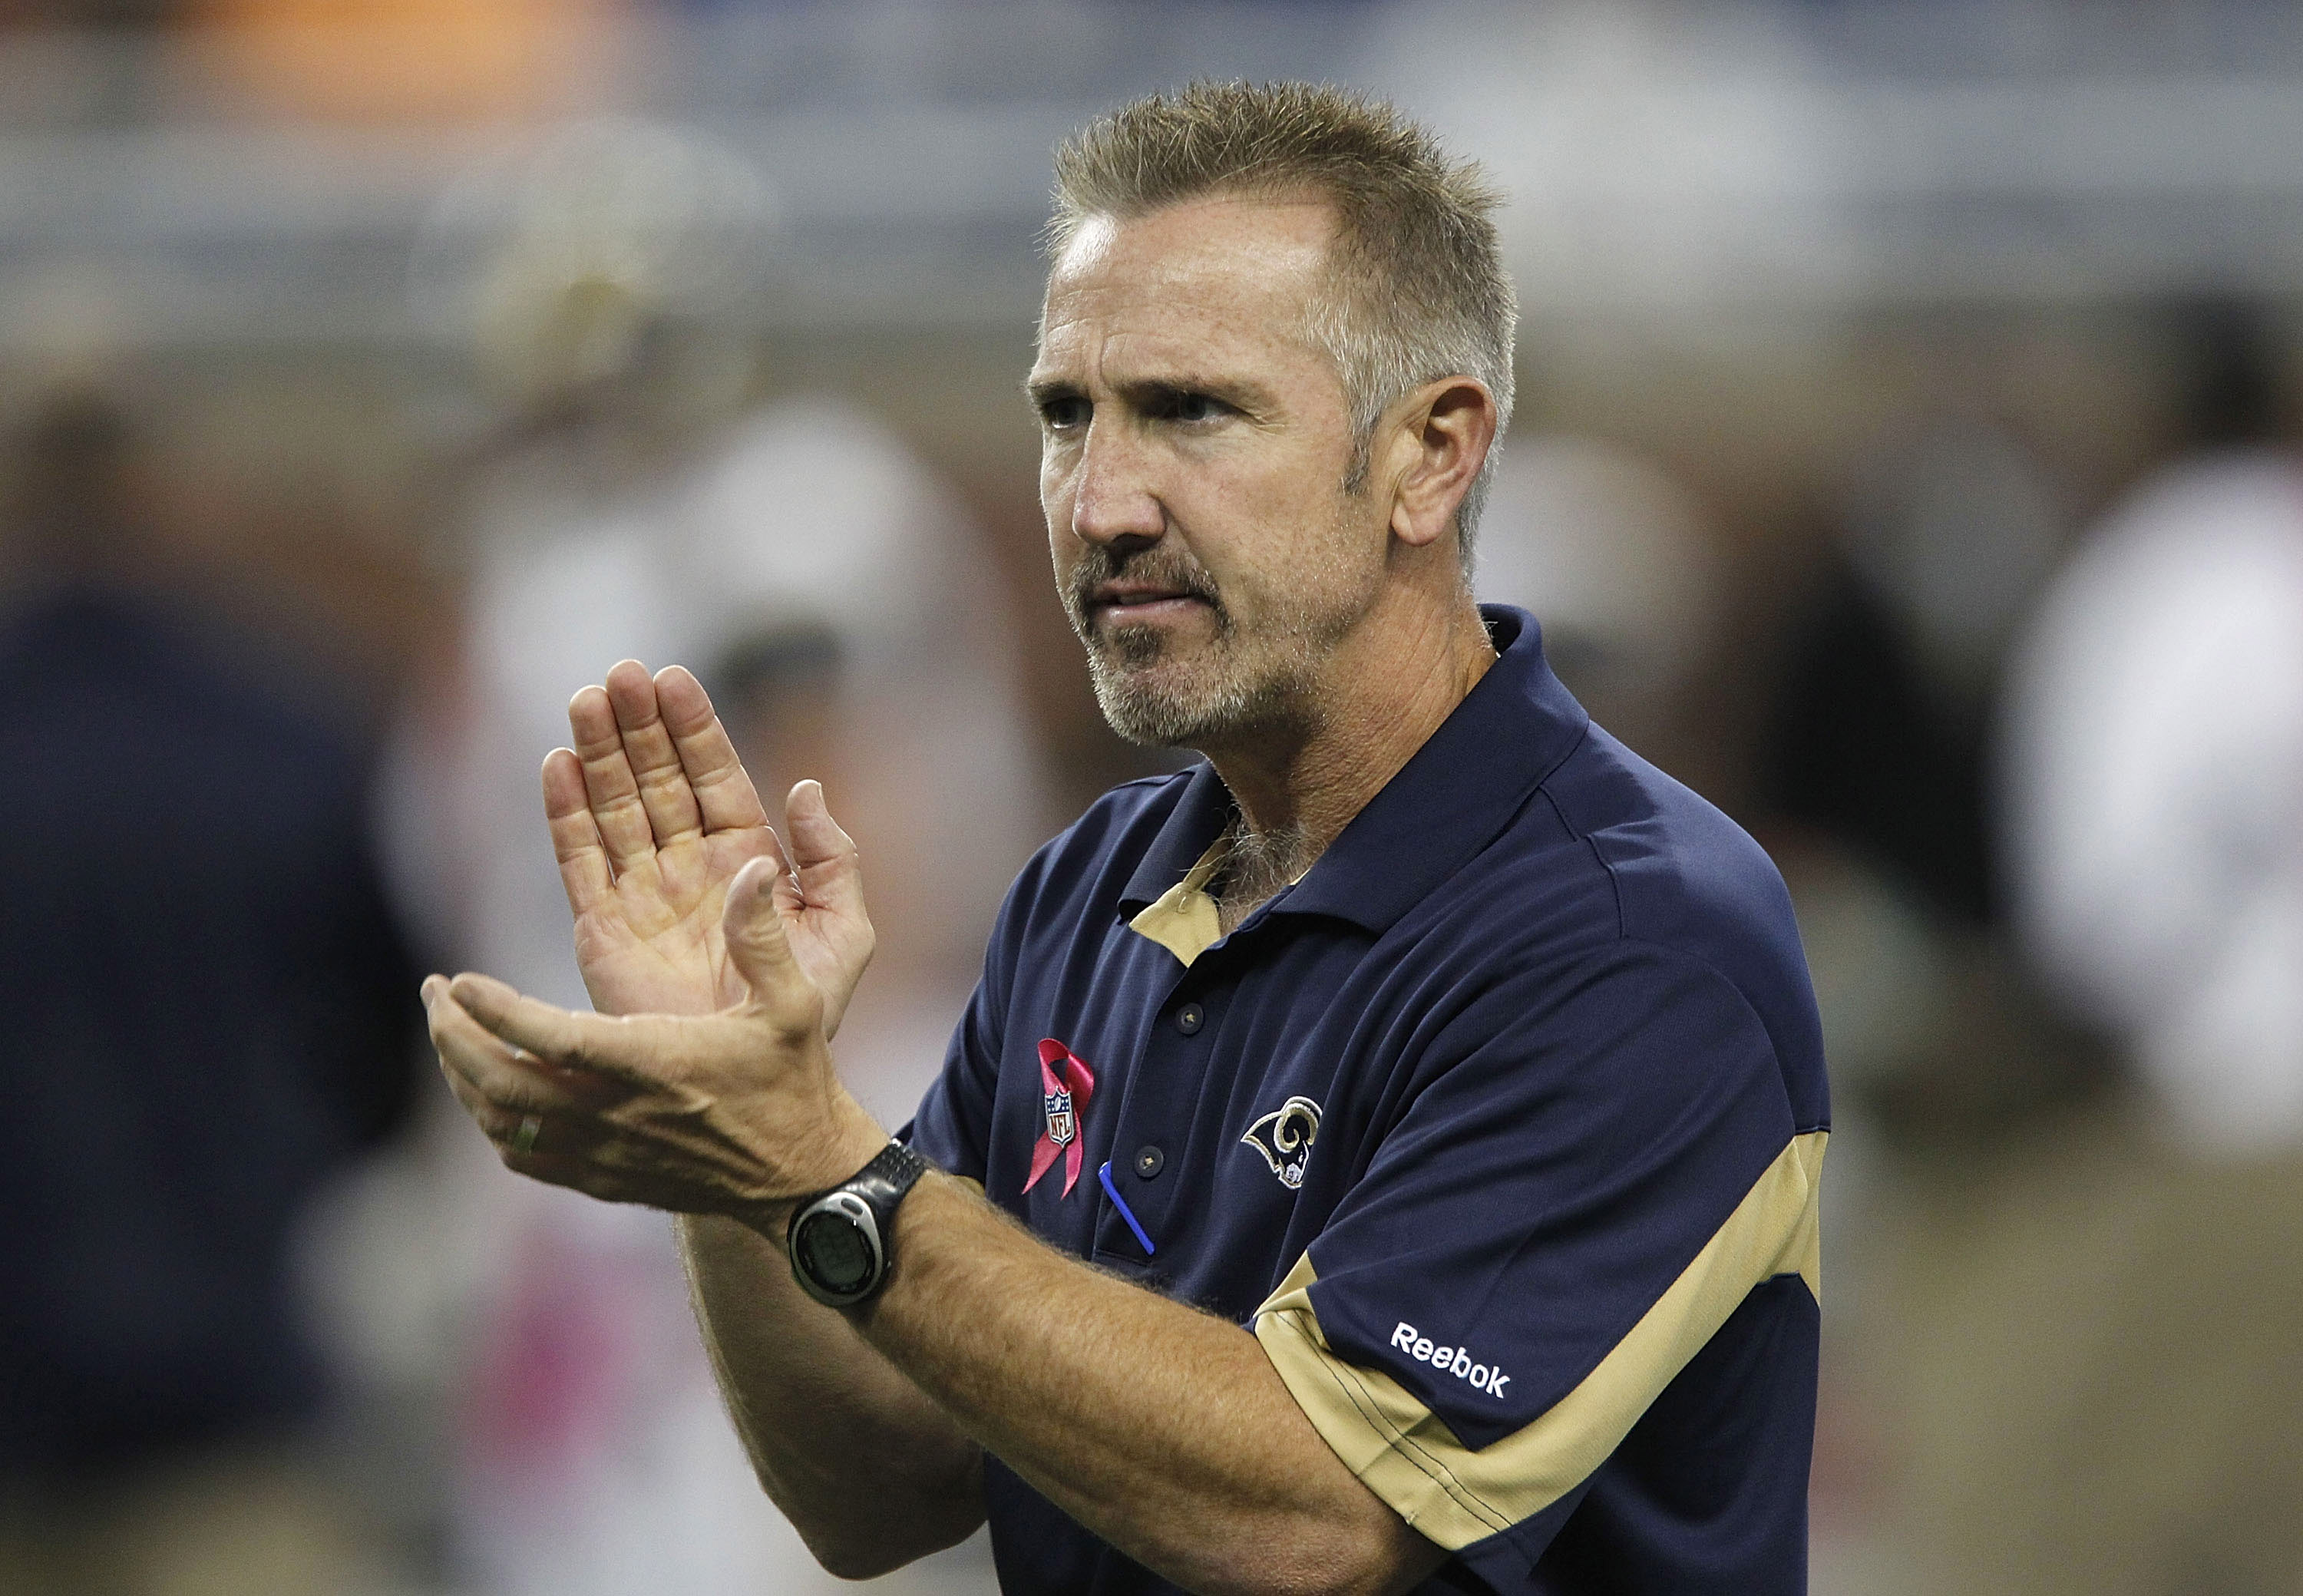 DETROIT - OCTOBER 10: St. Louis Rams head coach Steve Spagnuolo during the warms up prior to the start of the game against the Detroit Lions at Ford Field on October 10, 2010 in Detroit, Michigan.  (Photo by Leon Halip/Getty Images)